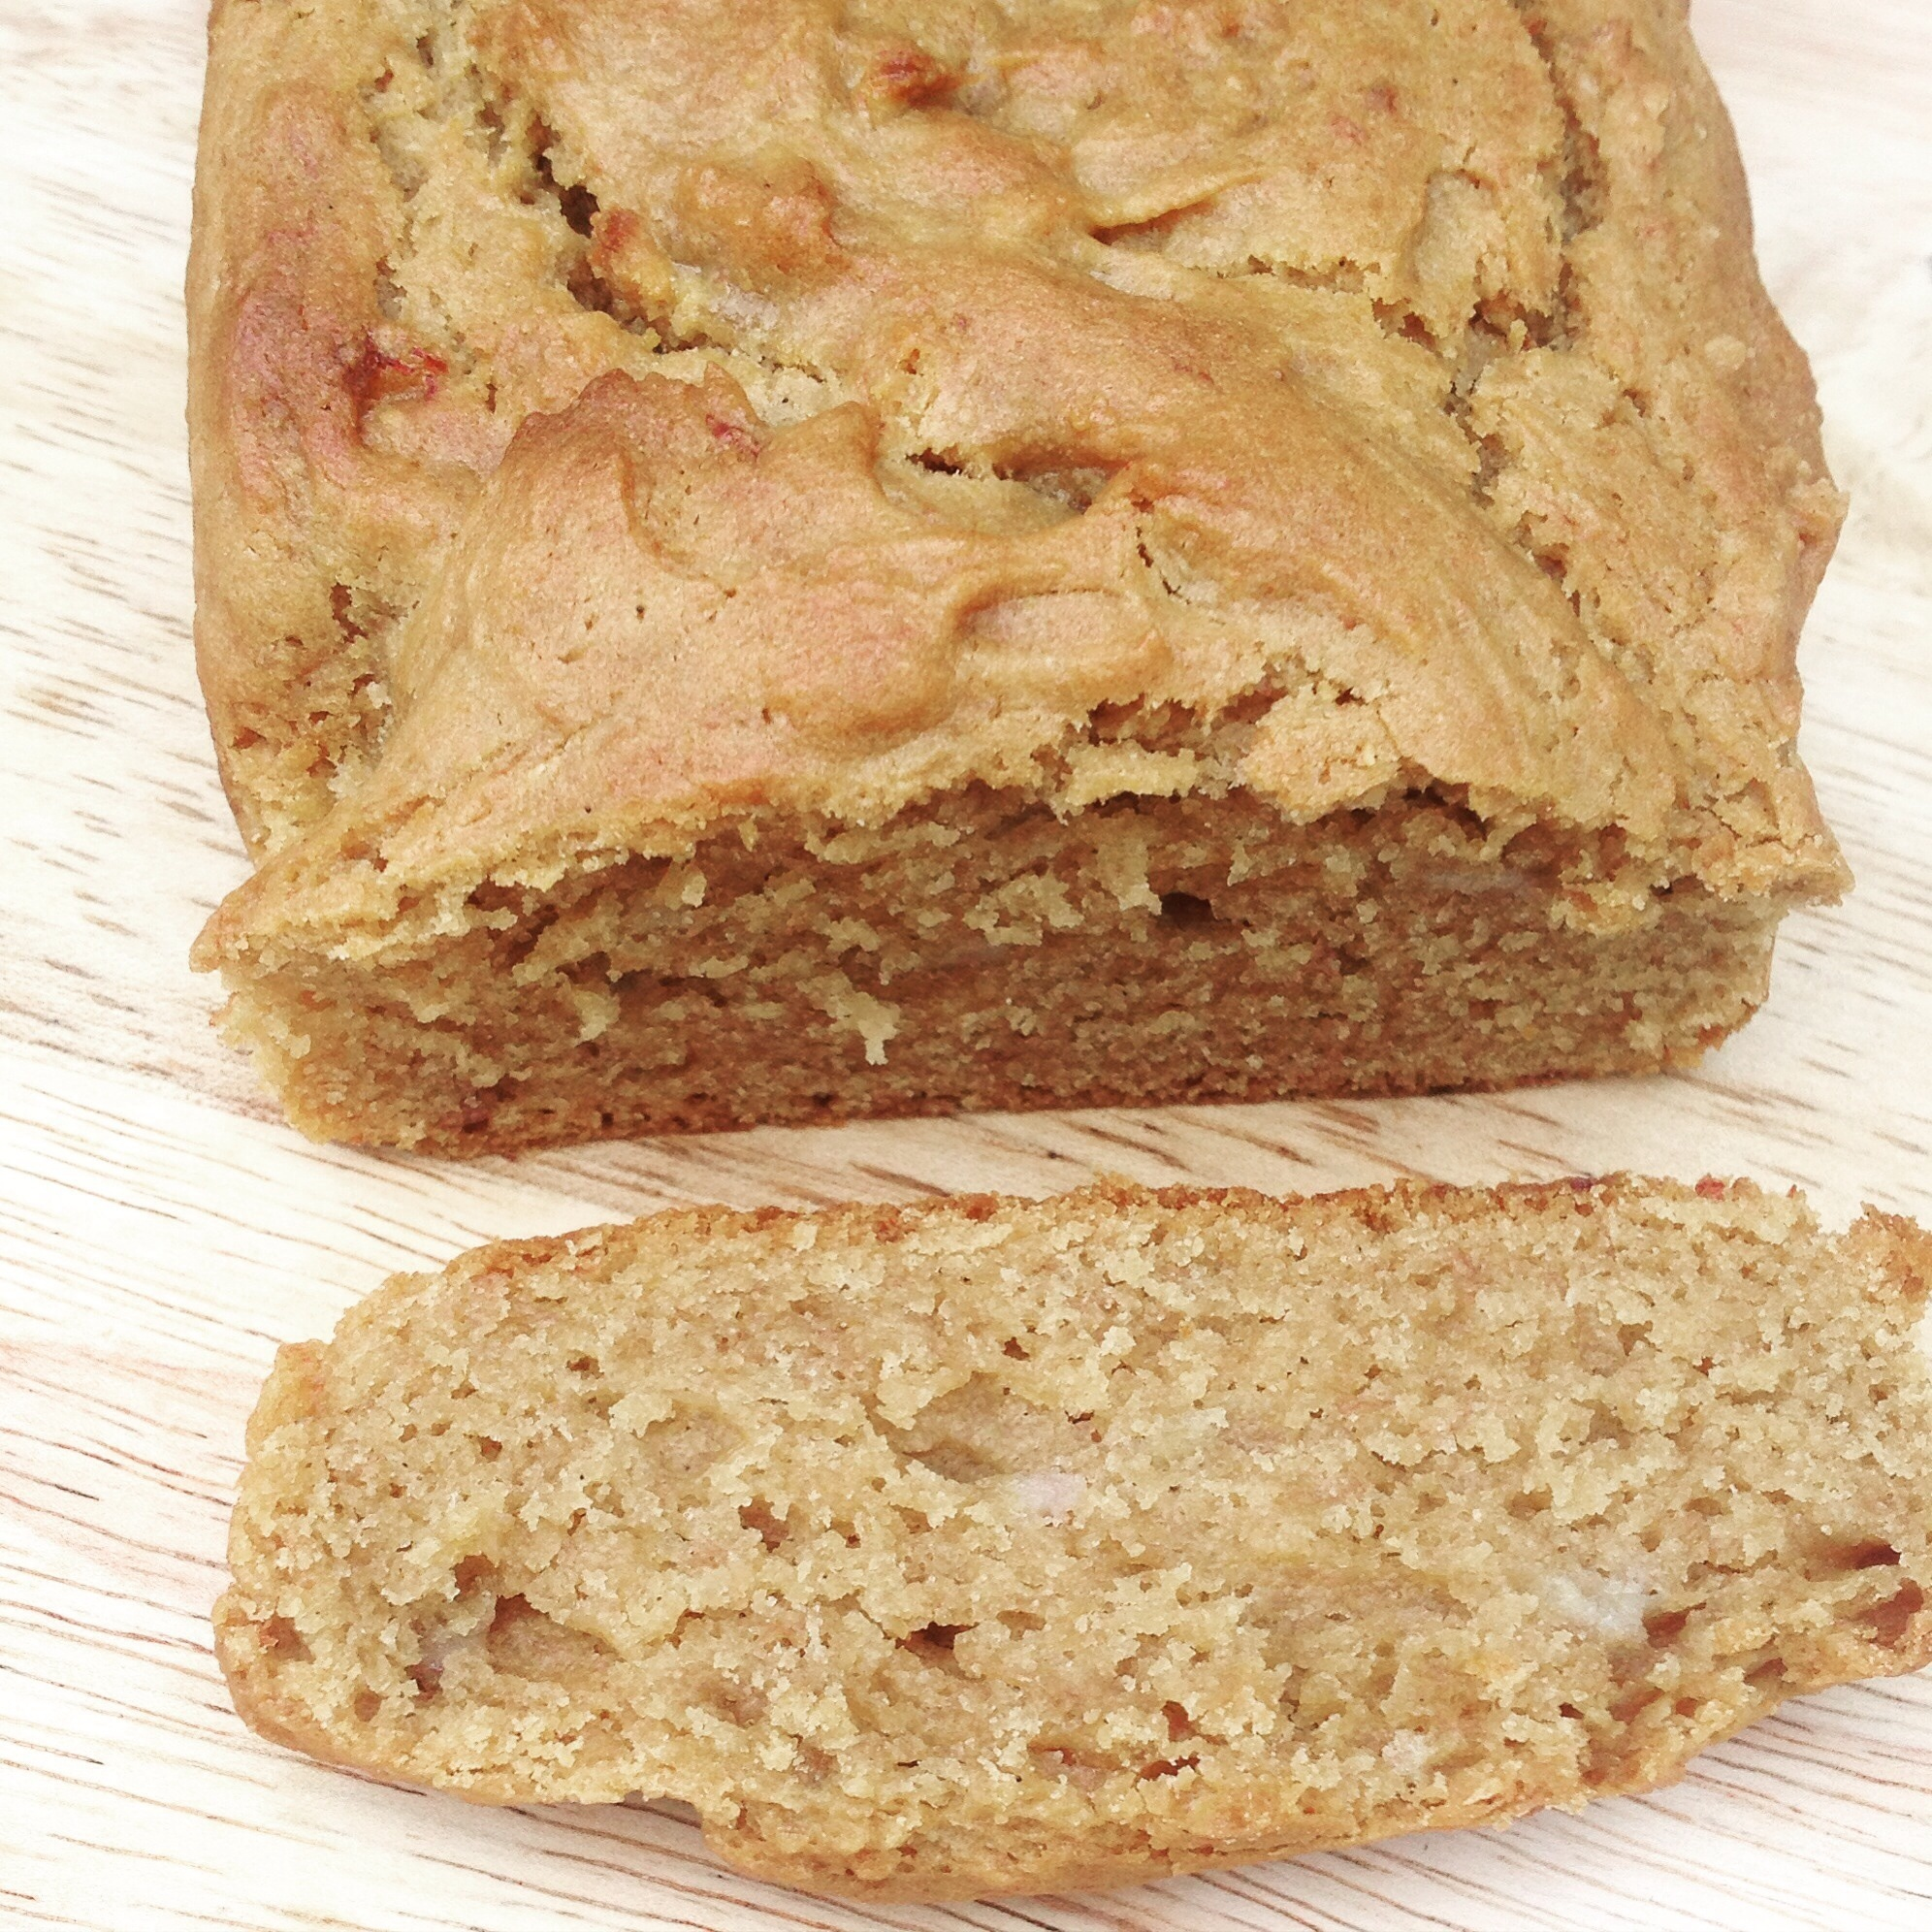 Peanut Butter & Banana Bread – Free From Dairy, Eggs & Gluten